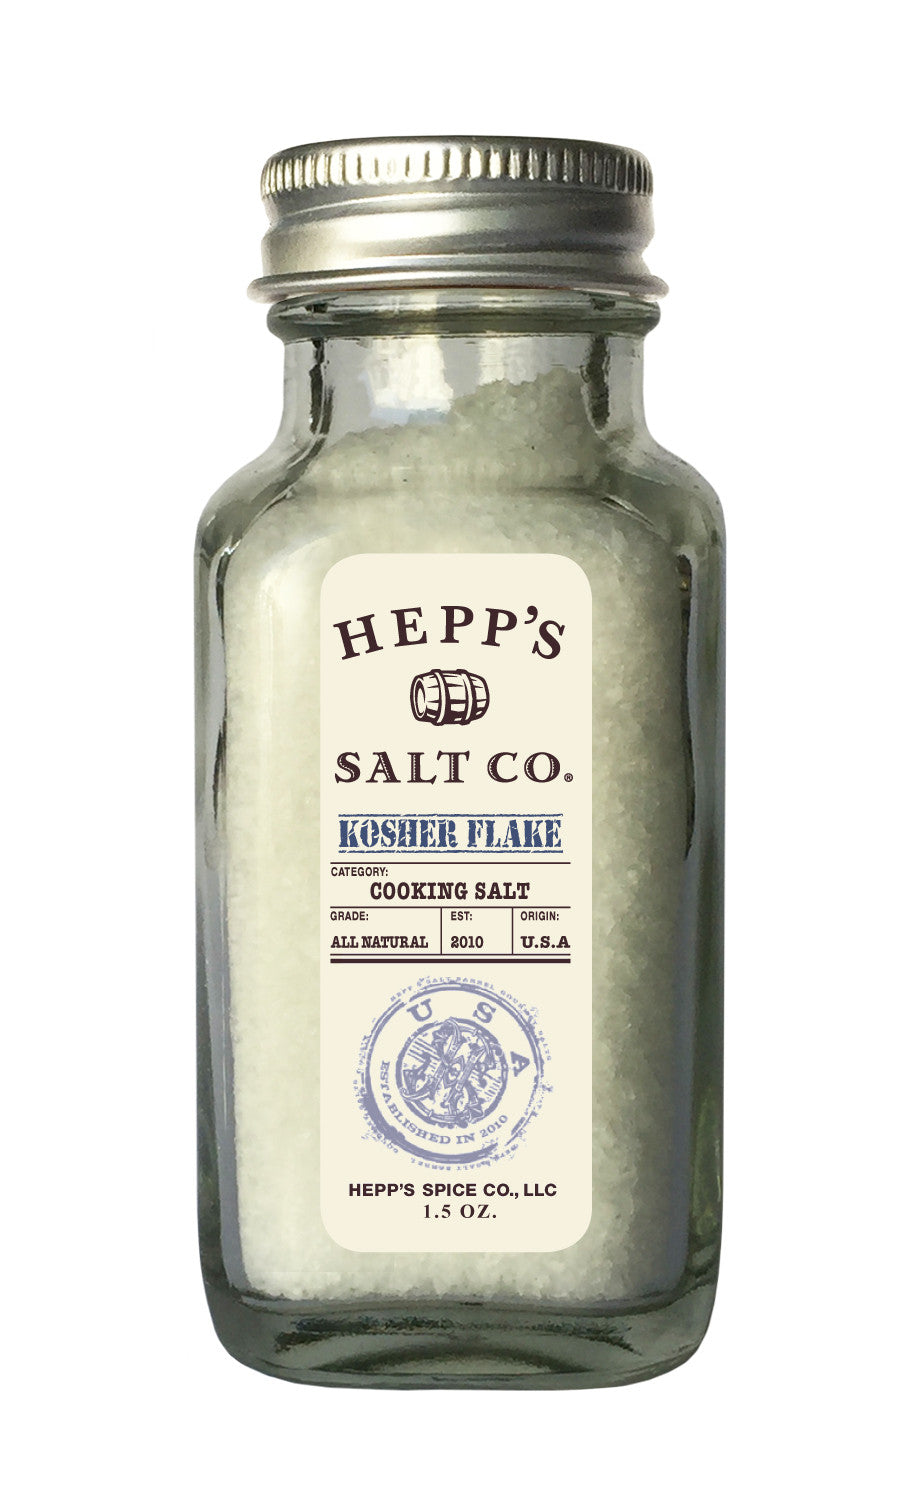 Kosher Flake Sea Salt - HEPPS SALT CO.